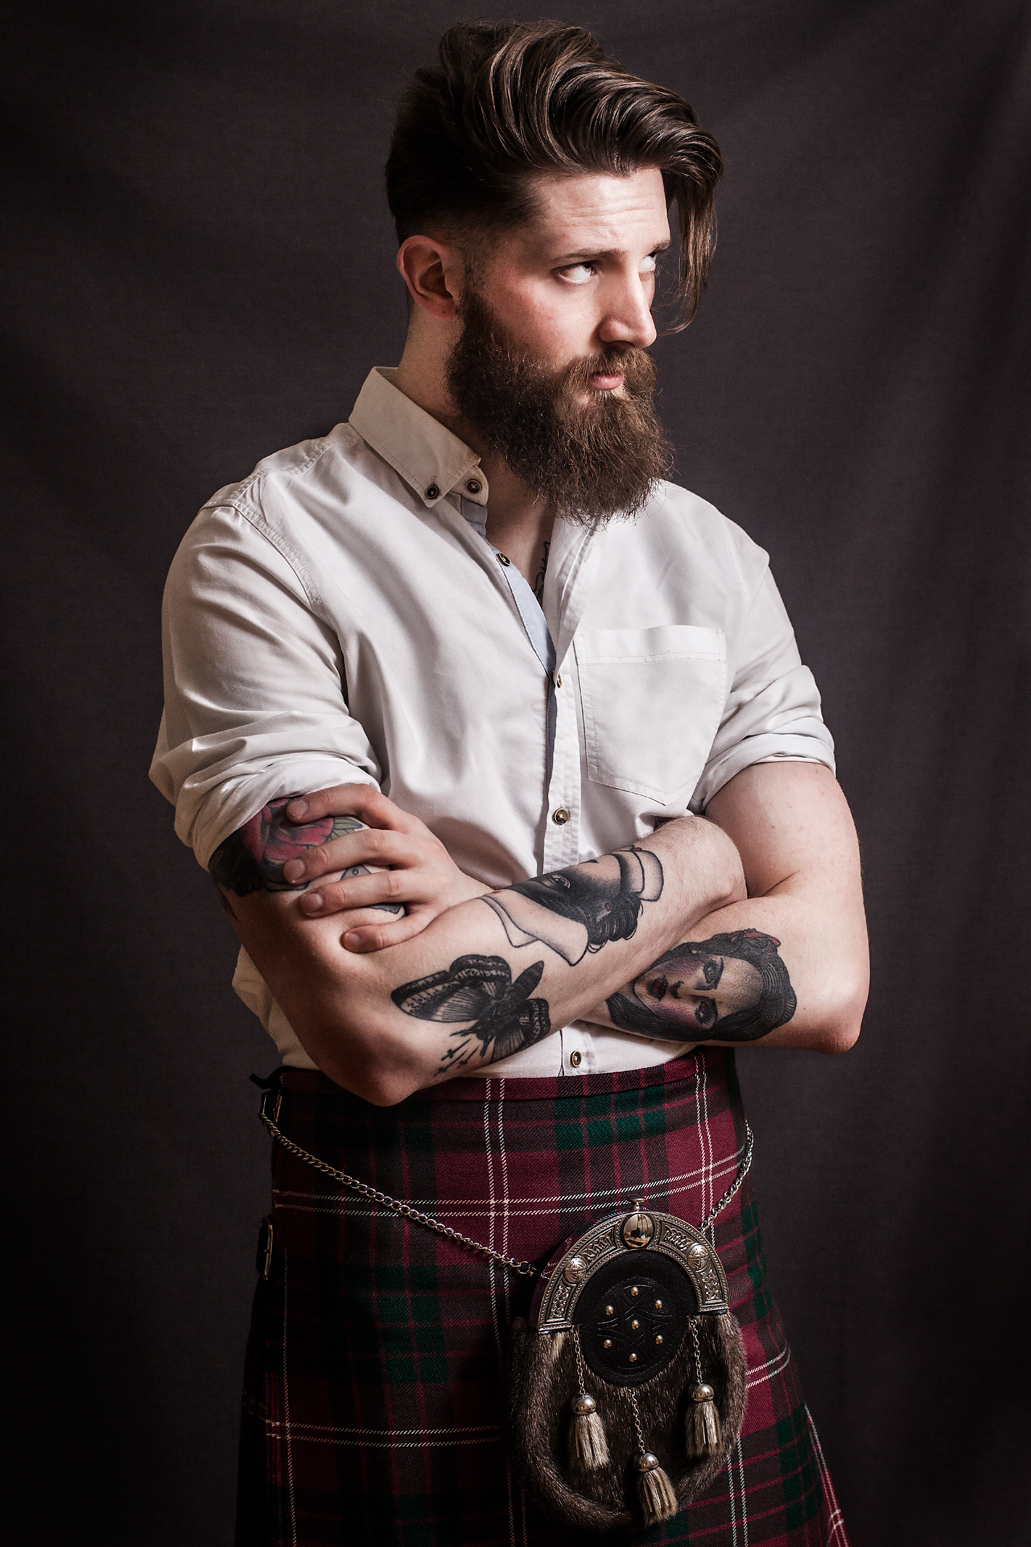 Beard-and-kilts-tartan-plaid-wallpaper-wp4404902